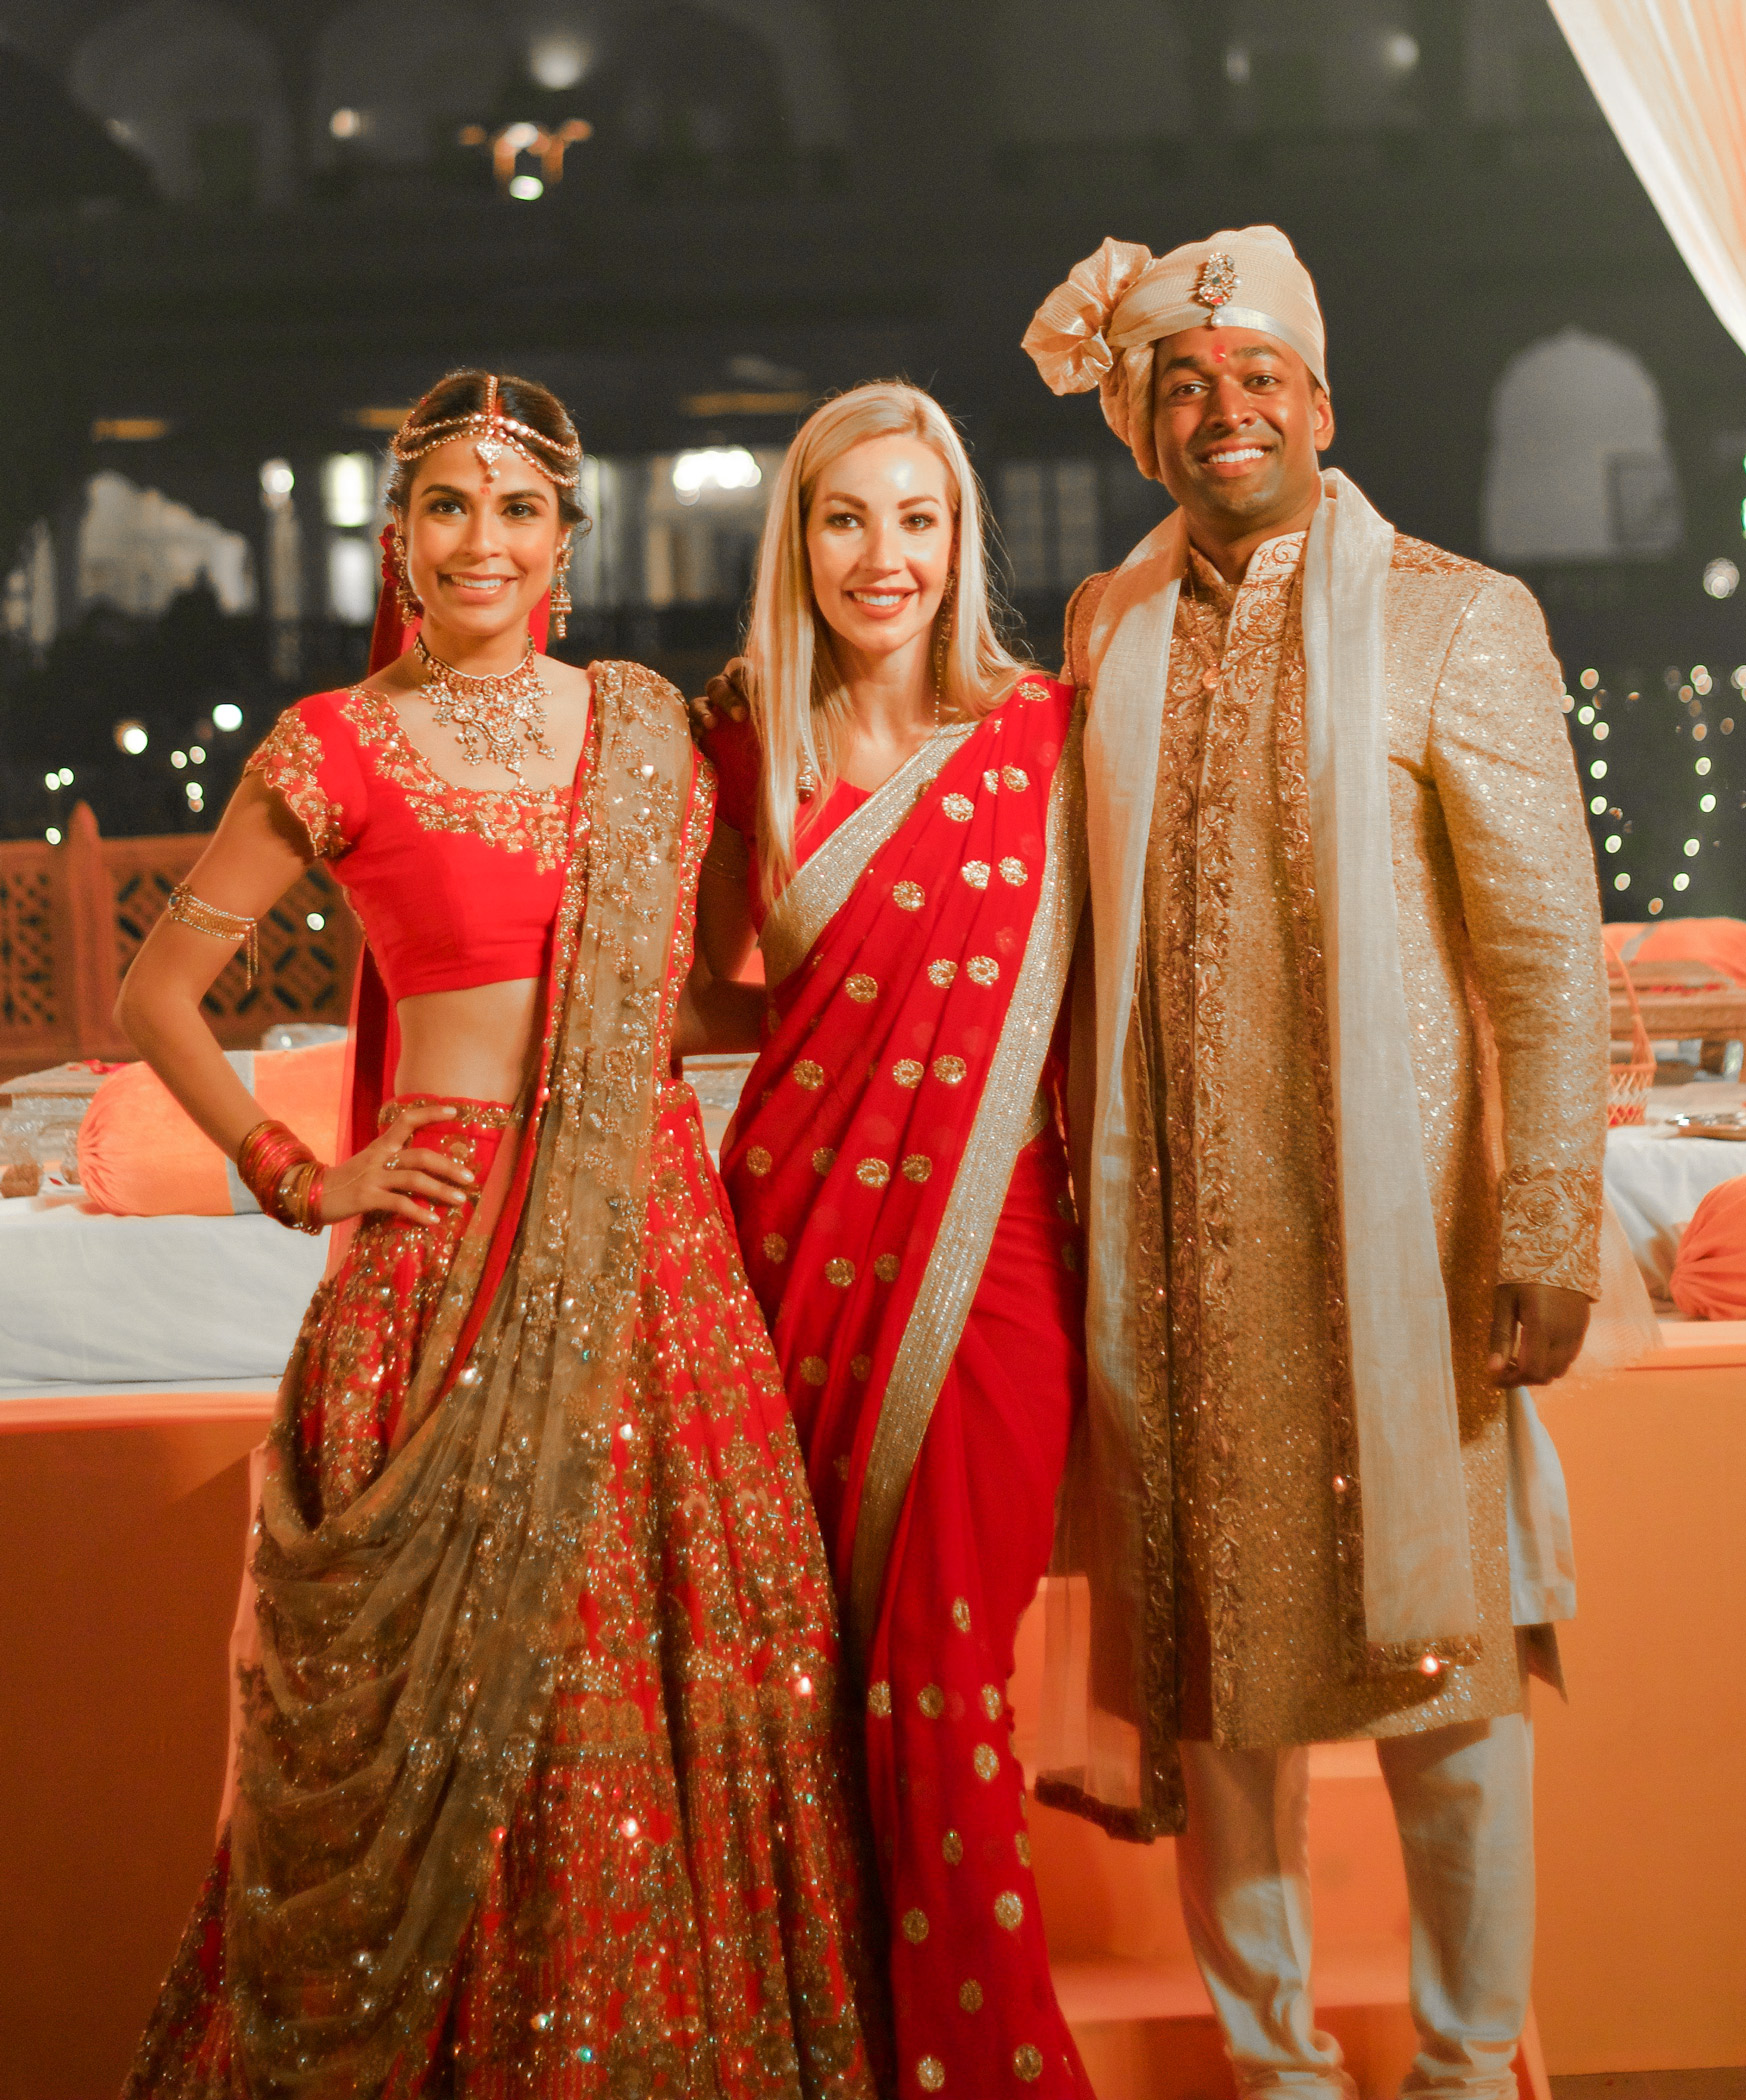 4149f3a5db1 The First Timers Guide to Attending an Indian Wedding